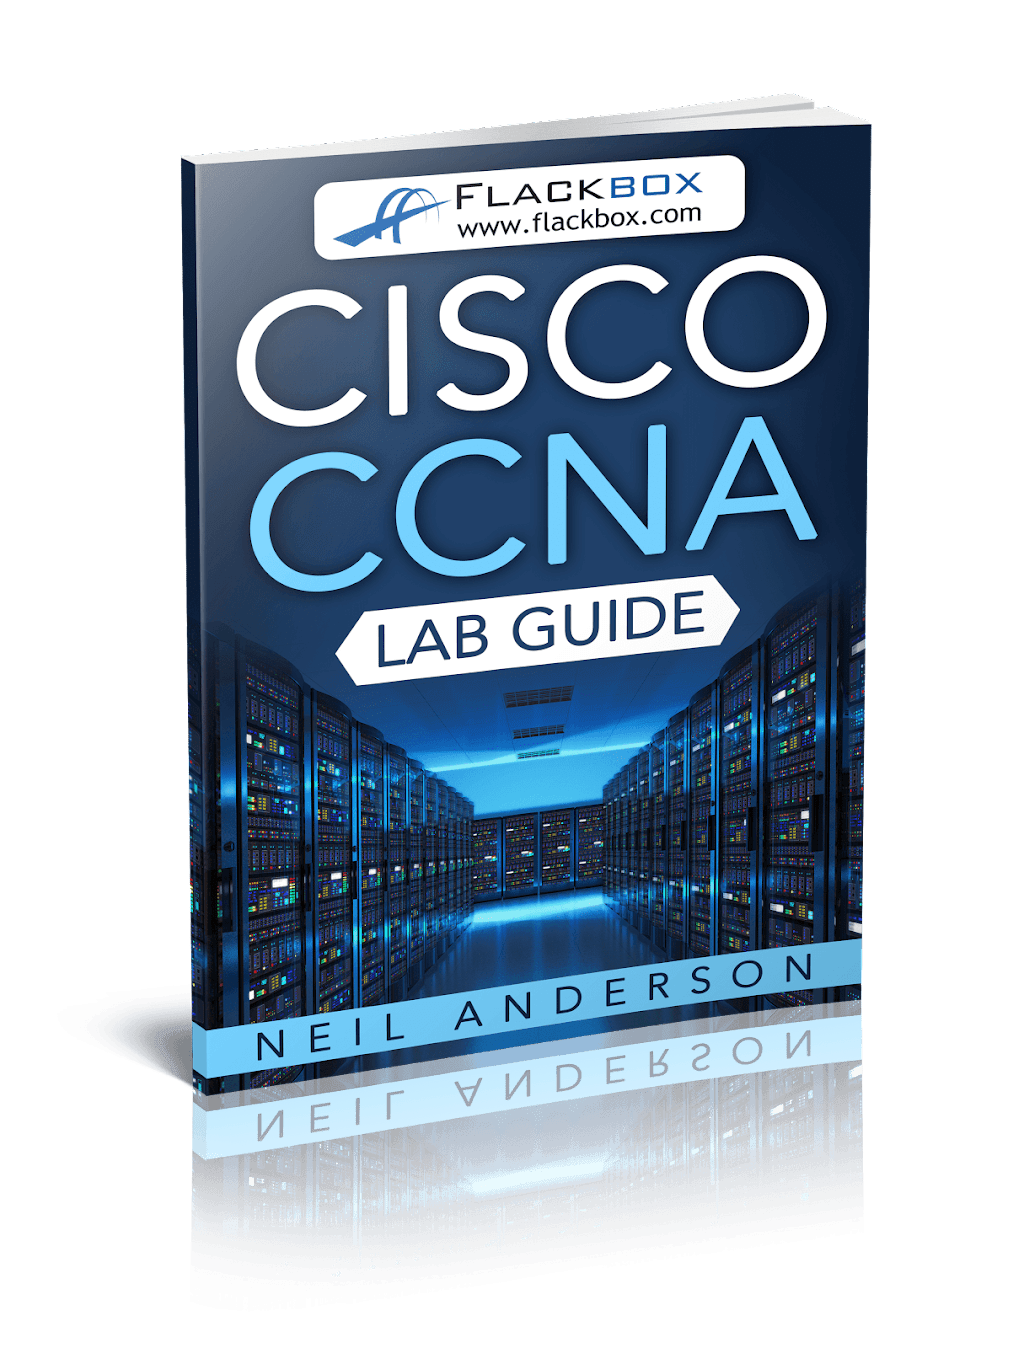 Cisco CCNA Lab Guide